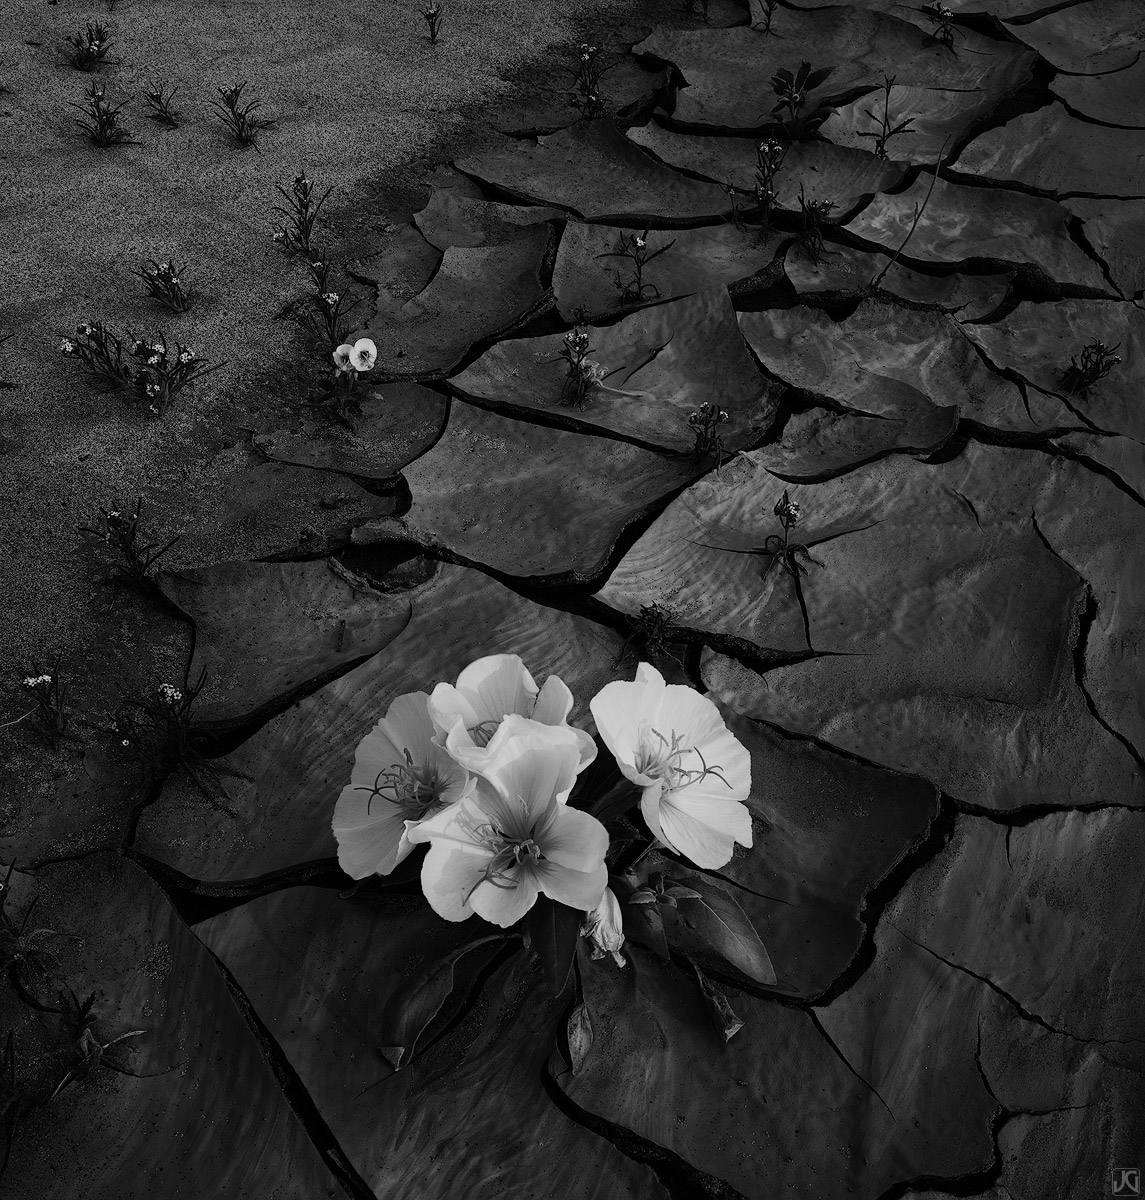 Along a dry wash in the midst of a seemingly lifeless desert, wildflowers spring to life.